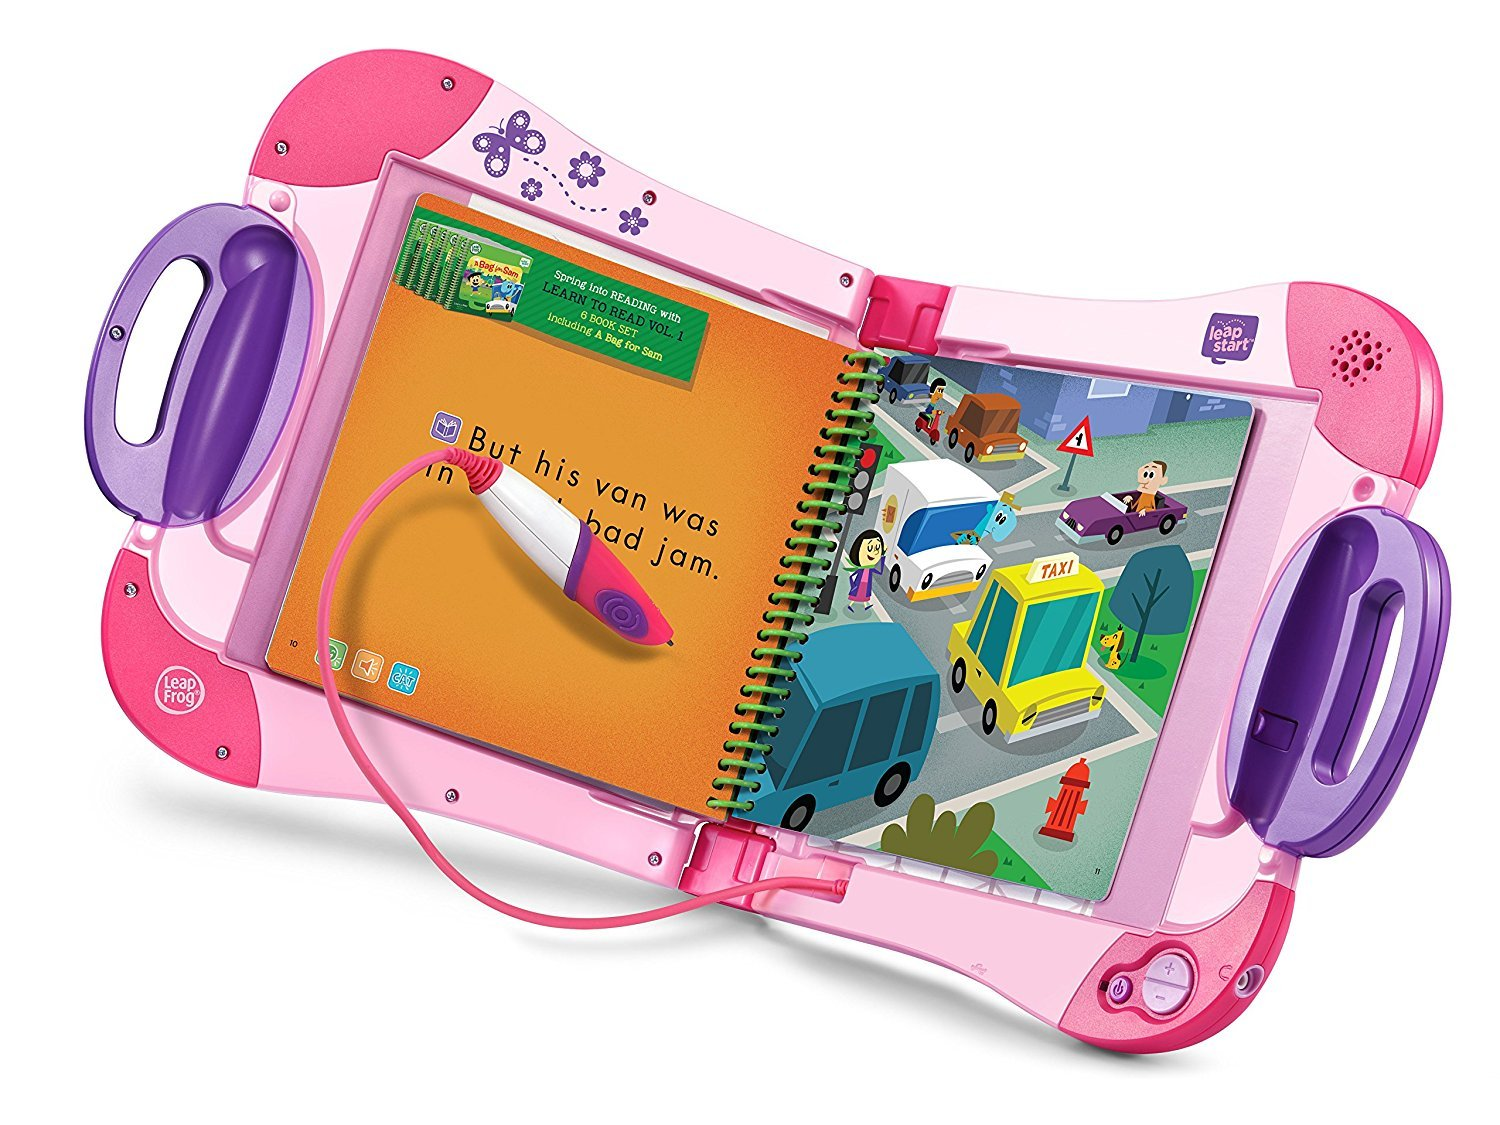 LeapFrog LeapStart Preschool To 1st Grade Learning System Pink Plus Level 1 Activity Books, Learn Basic Skills For Life, Kids Fun Interactive Toys and Books, Educational Tools, Early Schooling Bundle by LeapFrog (Image #2)